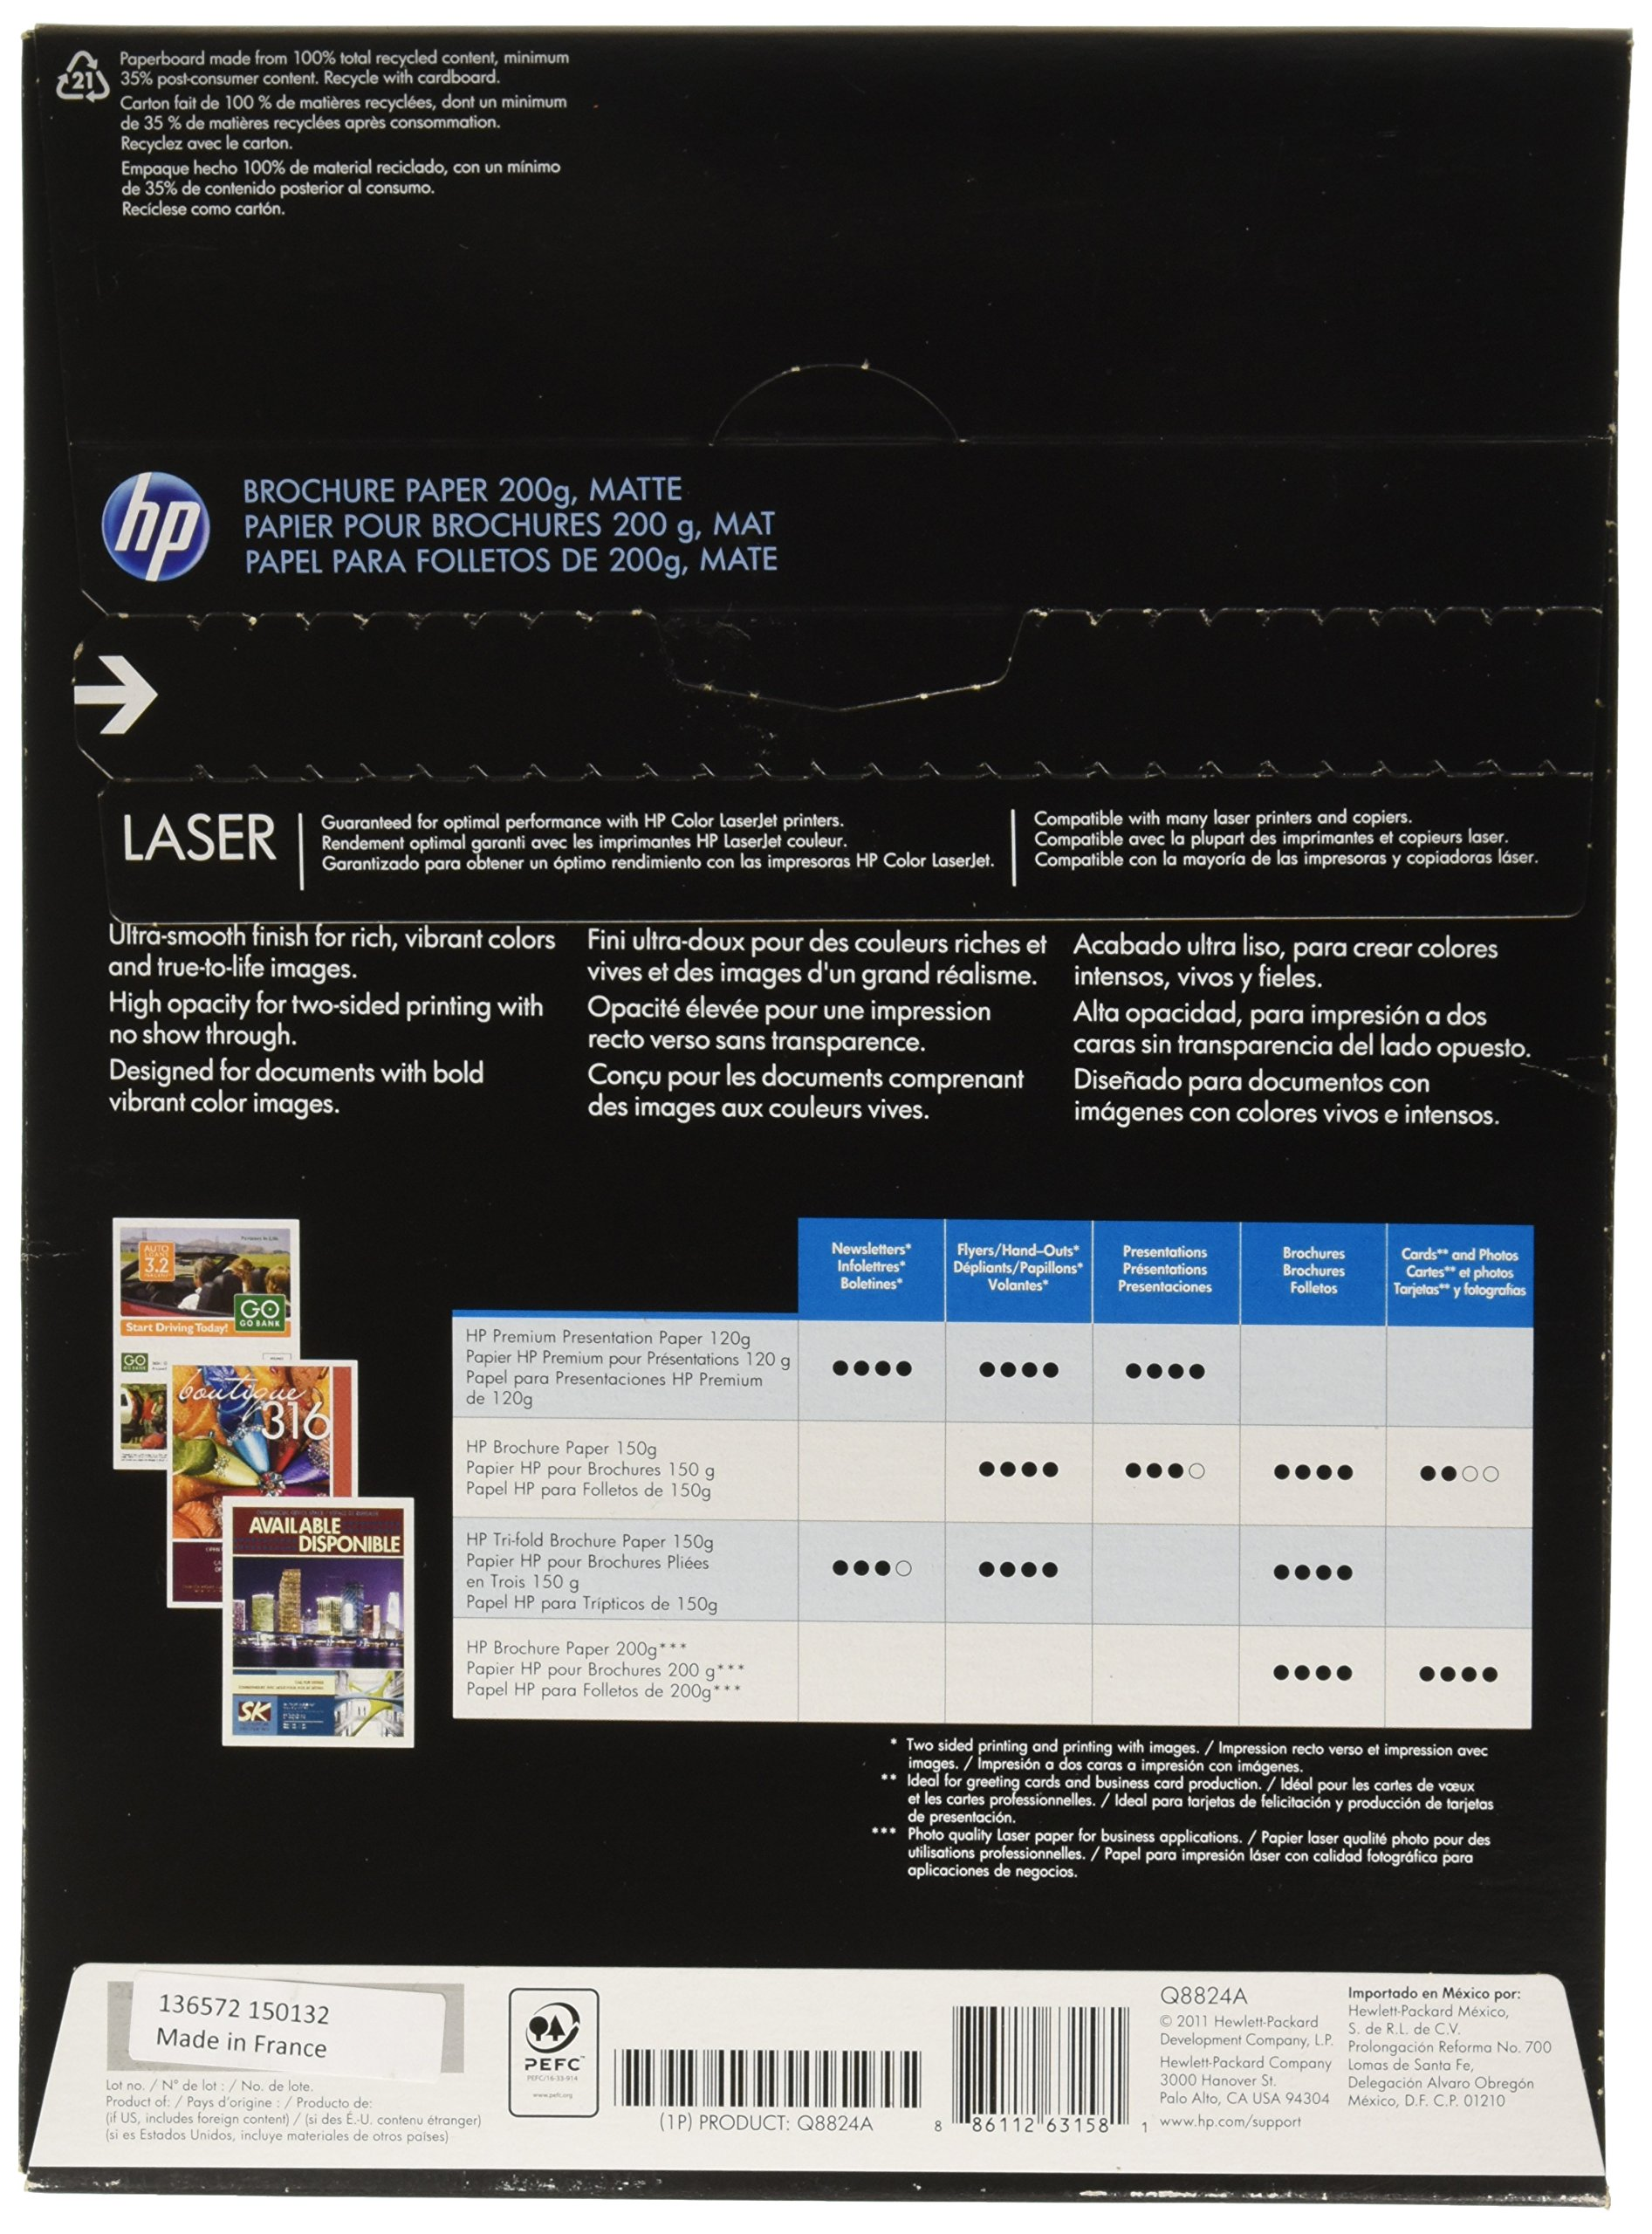 HP Q8824A Brochure Paper for Laser Printer, Matte, 8.5x11, 100 Sheets by HP (Image #1)